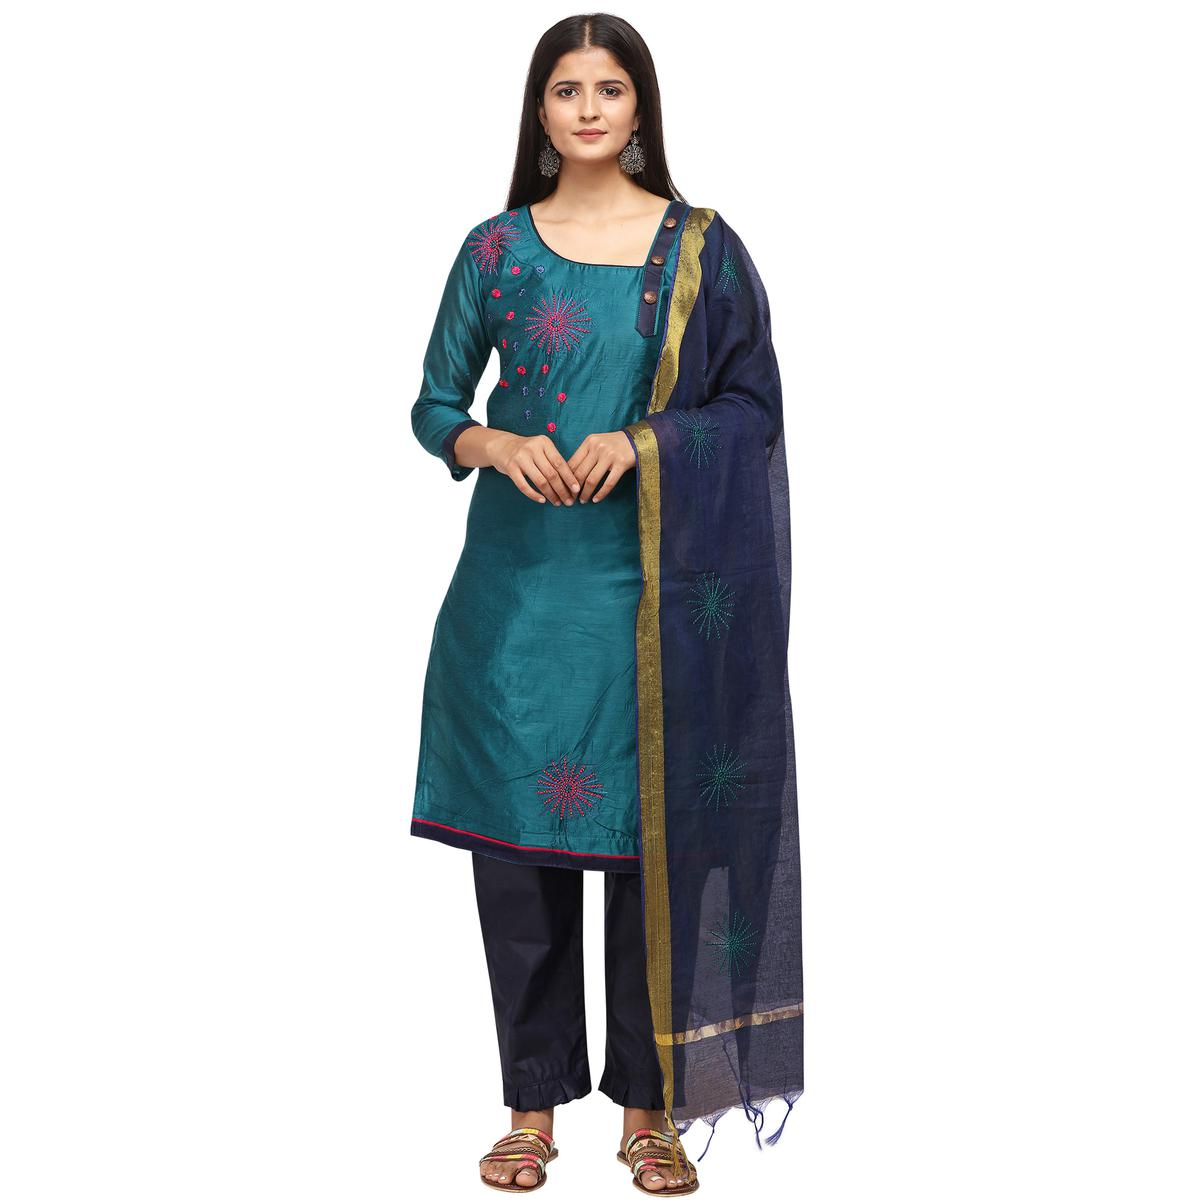 Marvellous Teal Blue Colored Casual Wear Embroidered Chanderi Cotton Dress Material